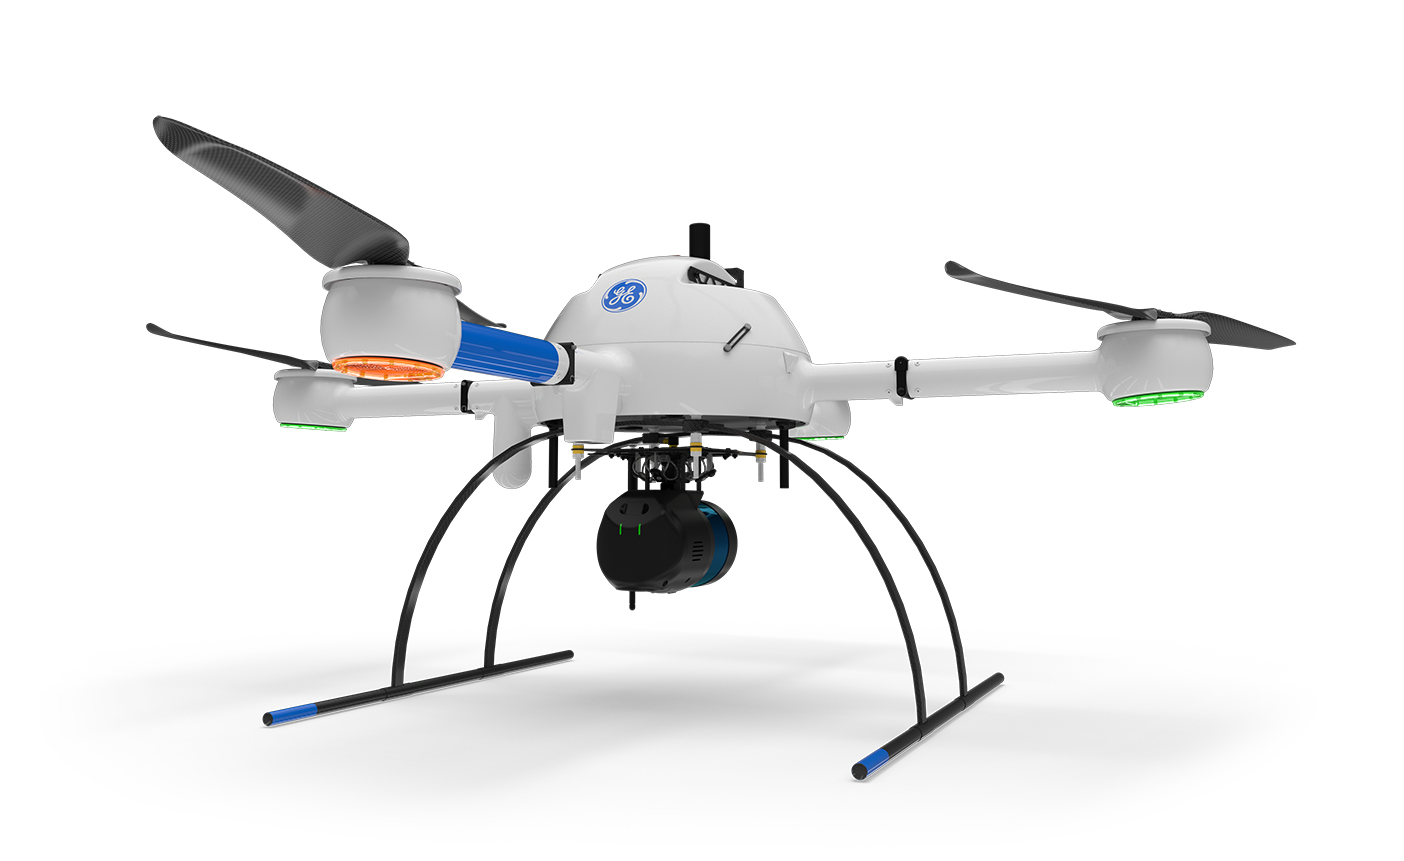 The newest member of the GE industrial drone line, the mdLIDAR1000LR